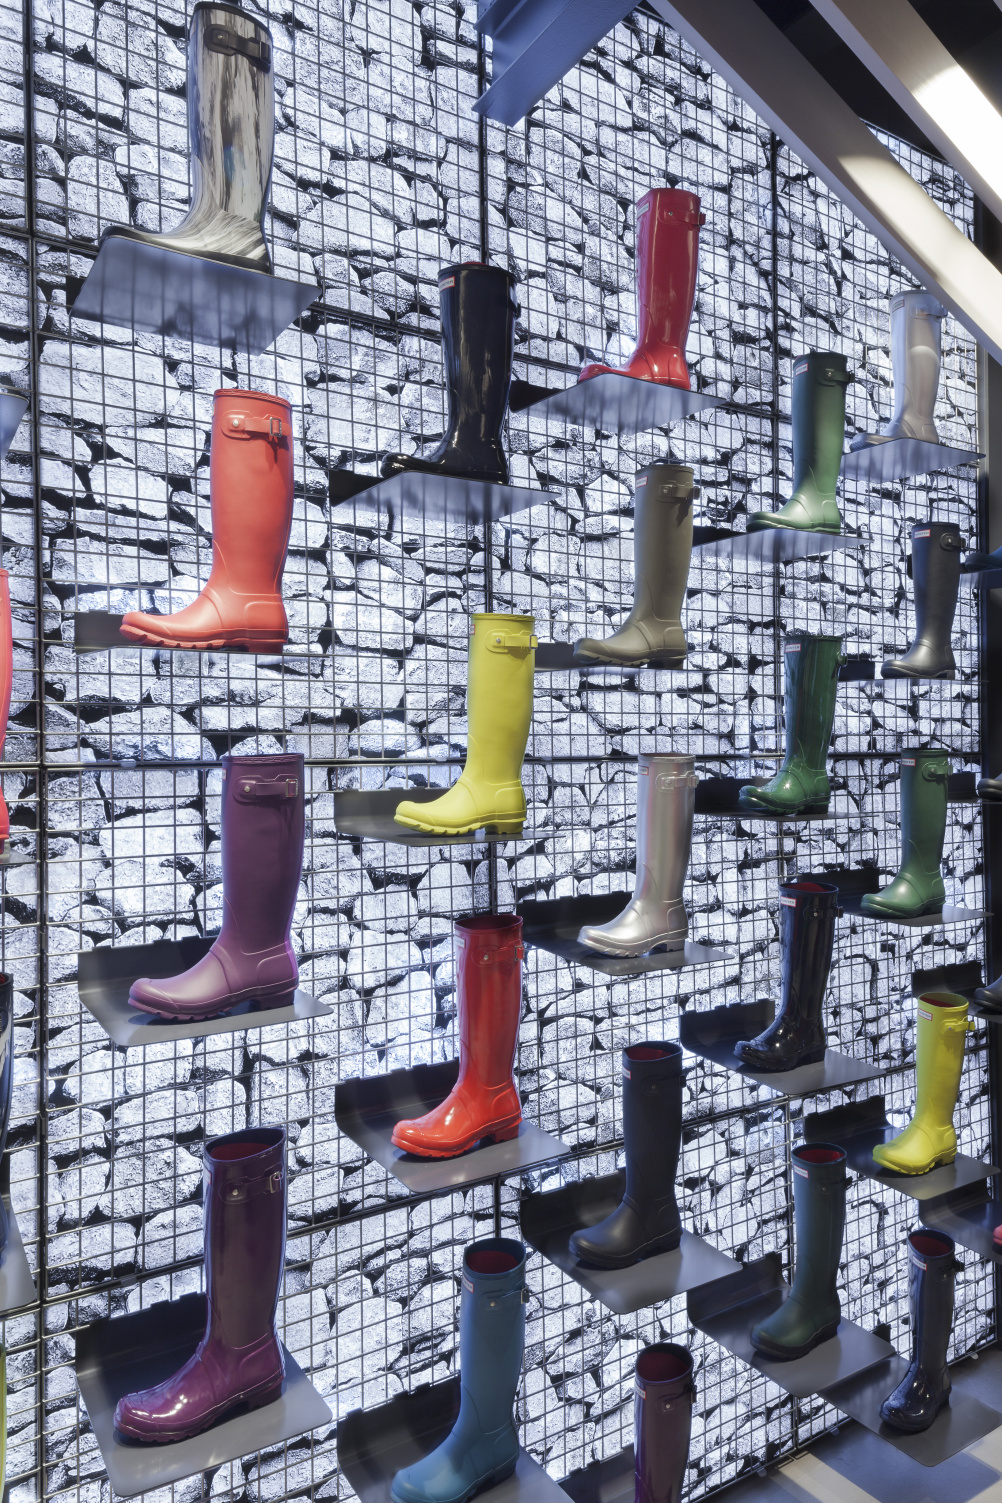 Boots displayed against the gabion wall